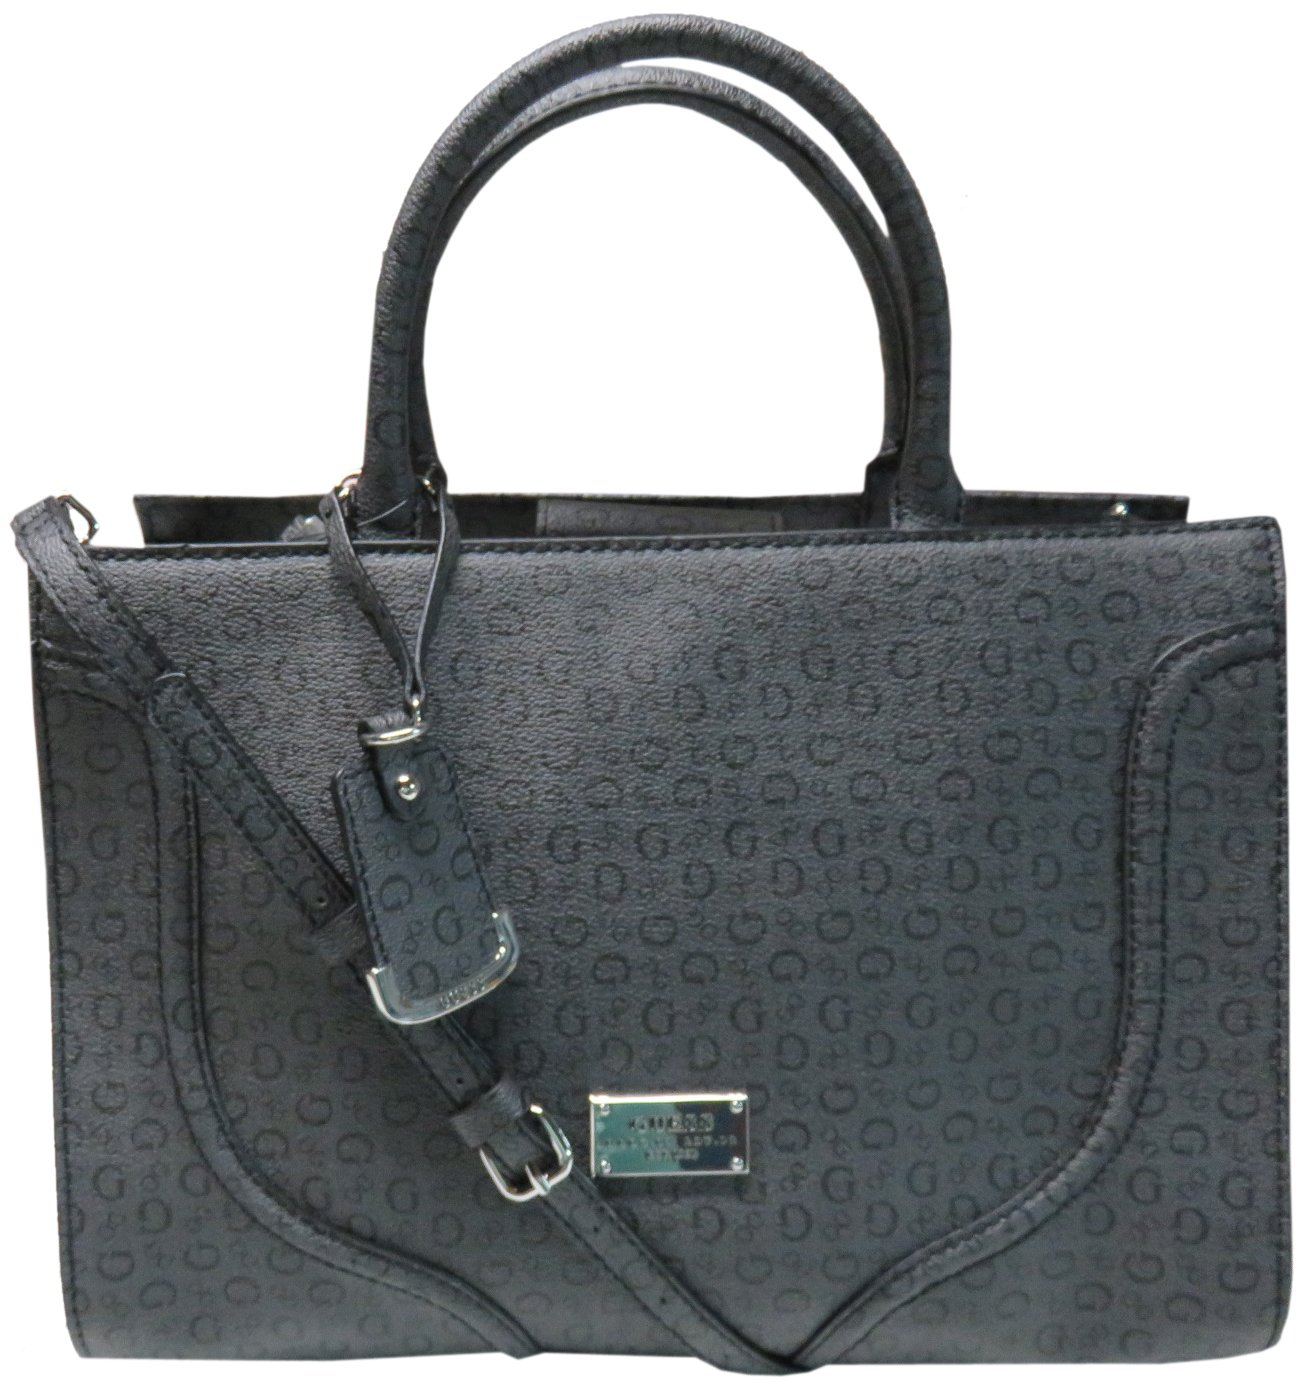 Guess Women's Purse Handbag Jackets Satchel Coal by GUESS